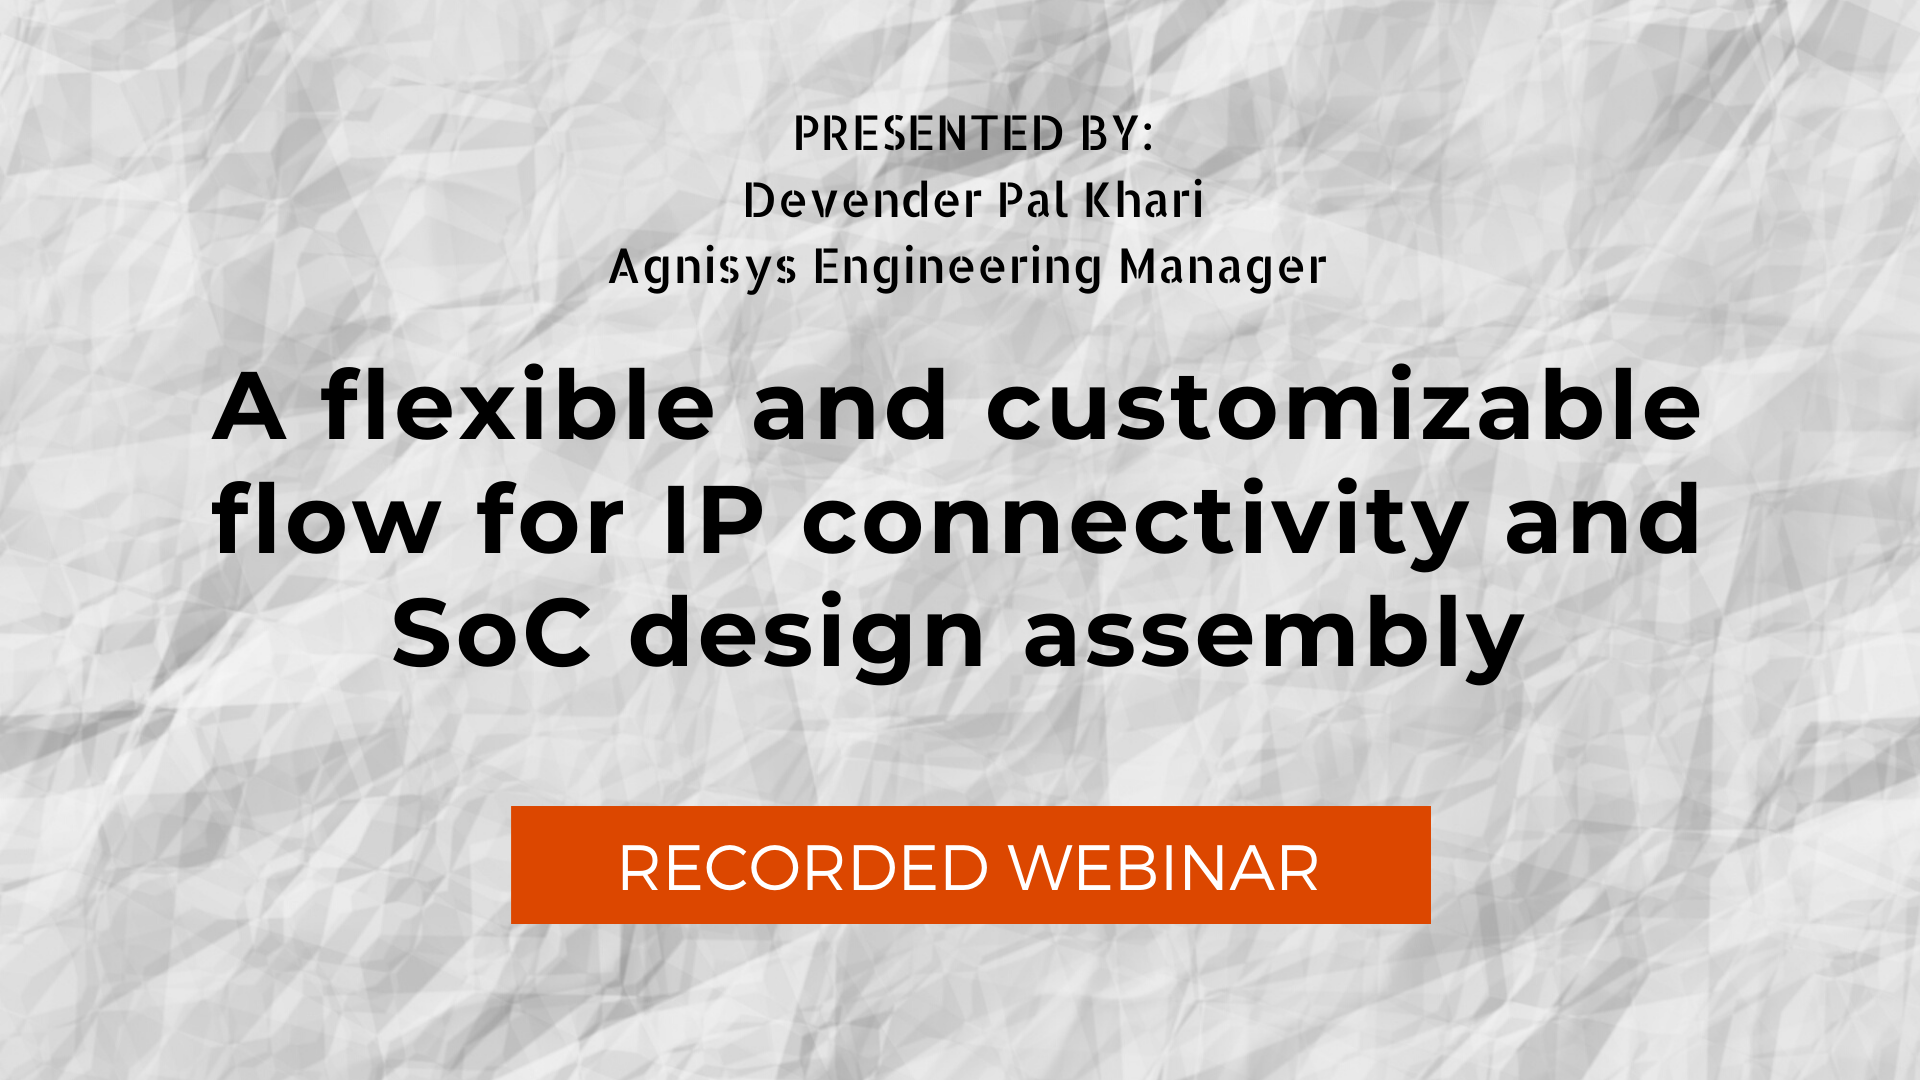 A flexible and customizable flow for IP connectivity and SoC design assembly